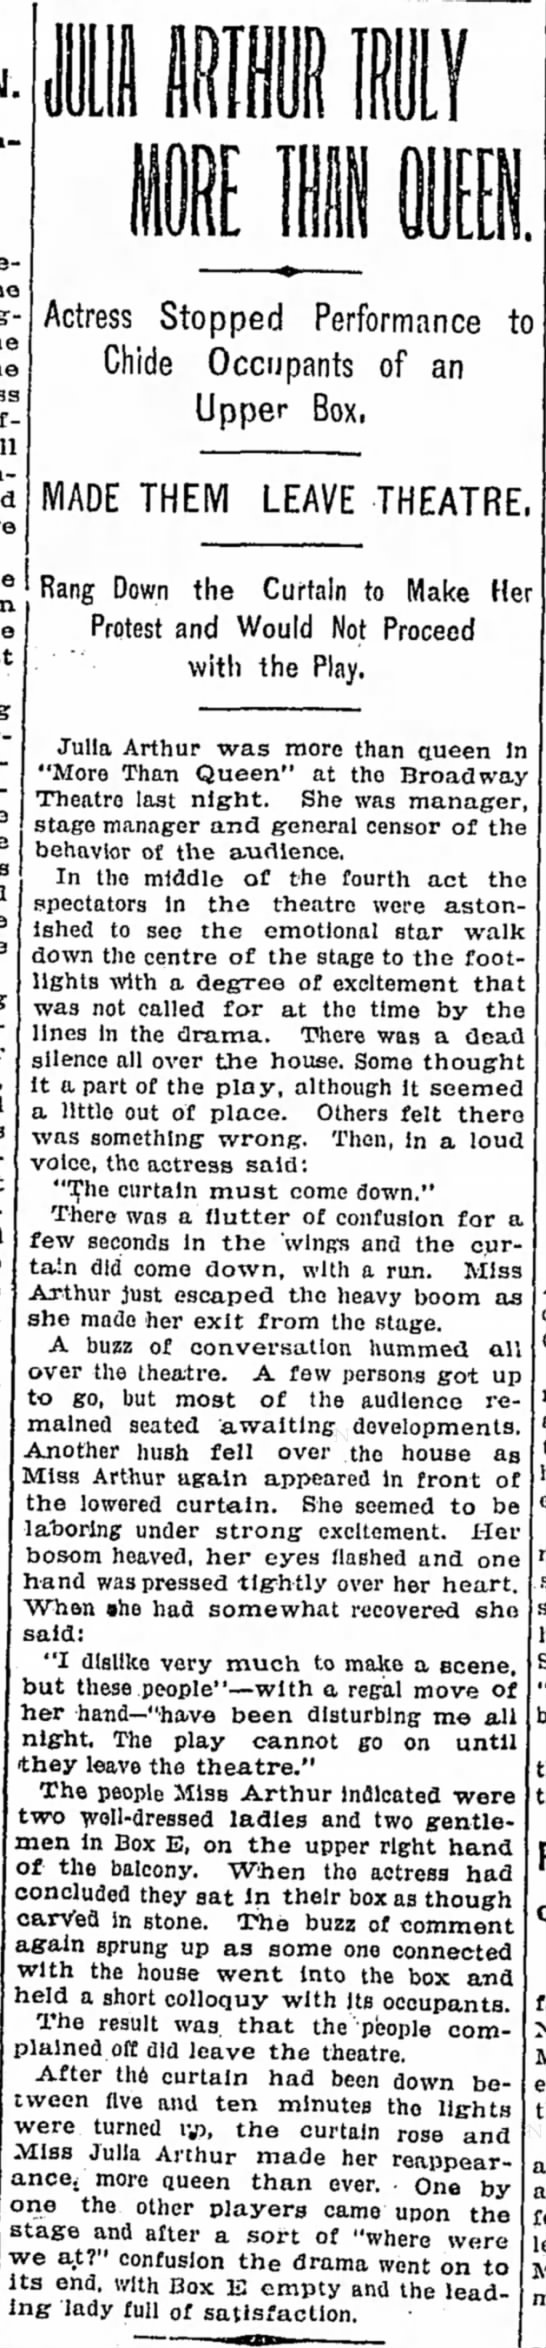 julia arthur play - Actress Stopped Performance to Chide Occupants...